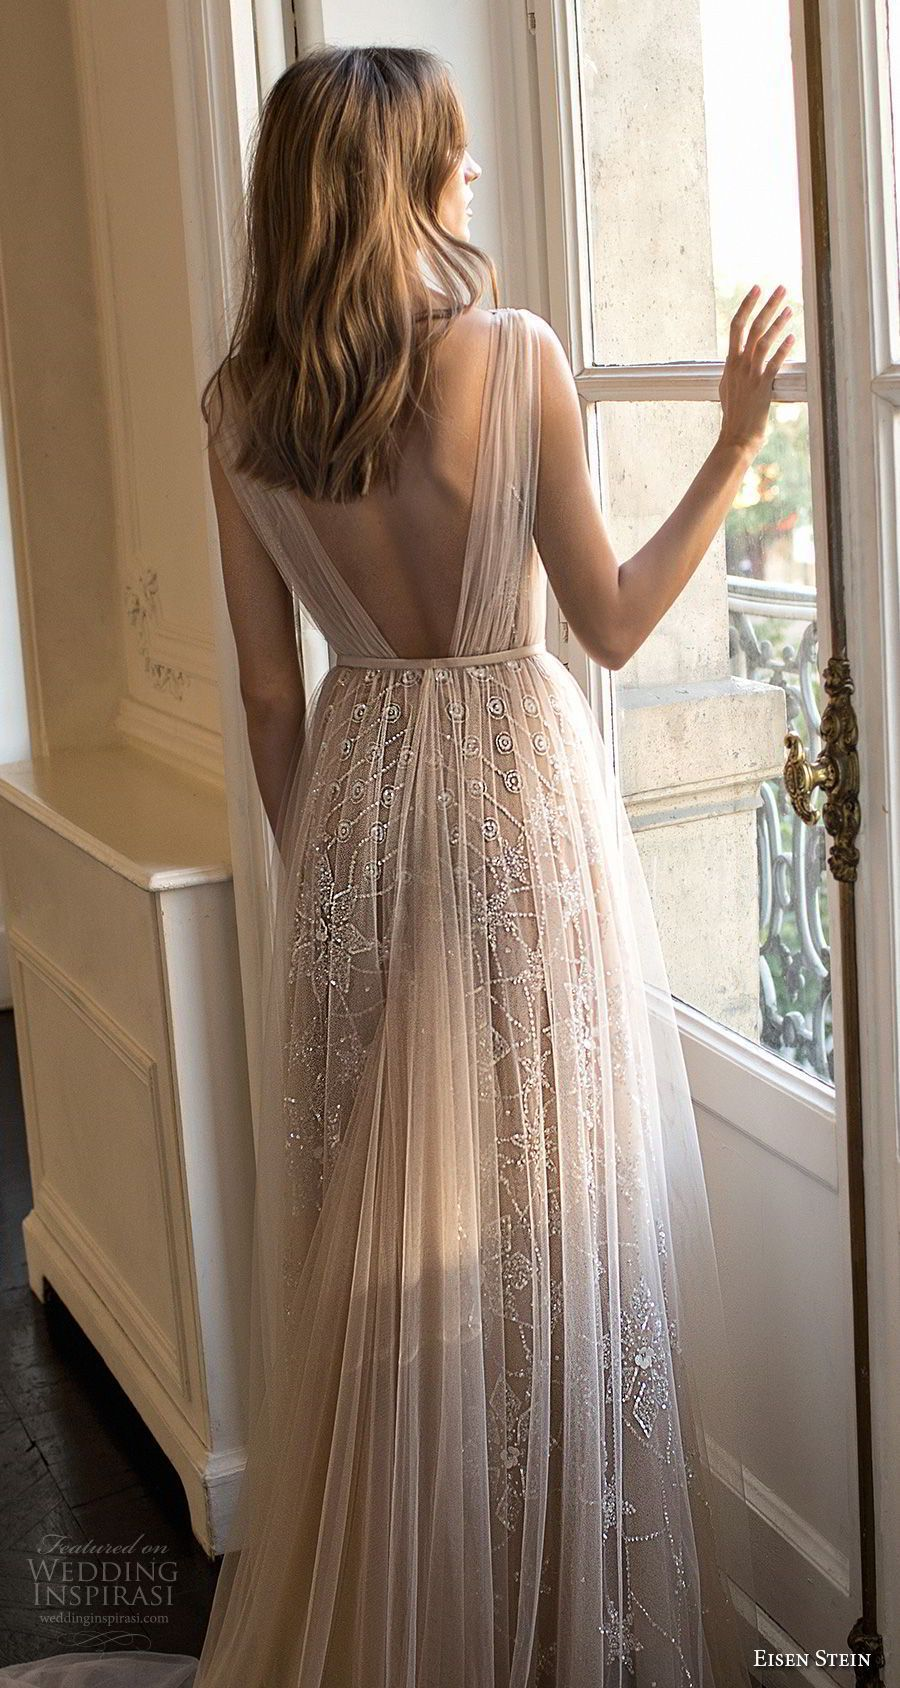 Eisen stein wedding dress u blush bridal collection in